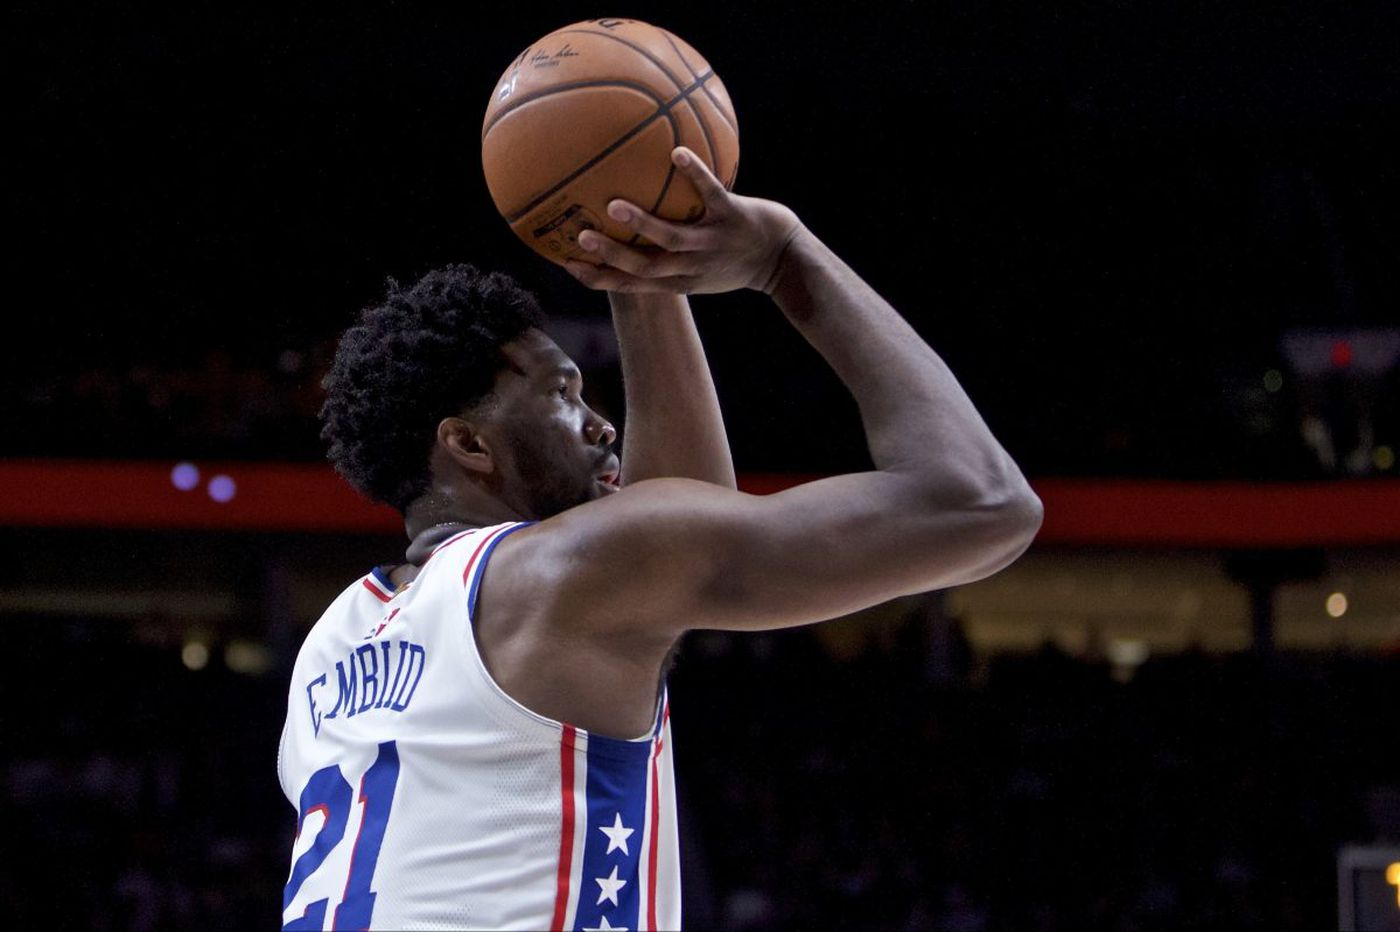 Sixers' Joel Embiid changes his mind, will play against Spurs despite sprained hand